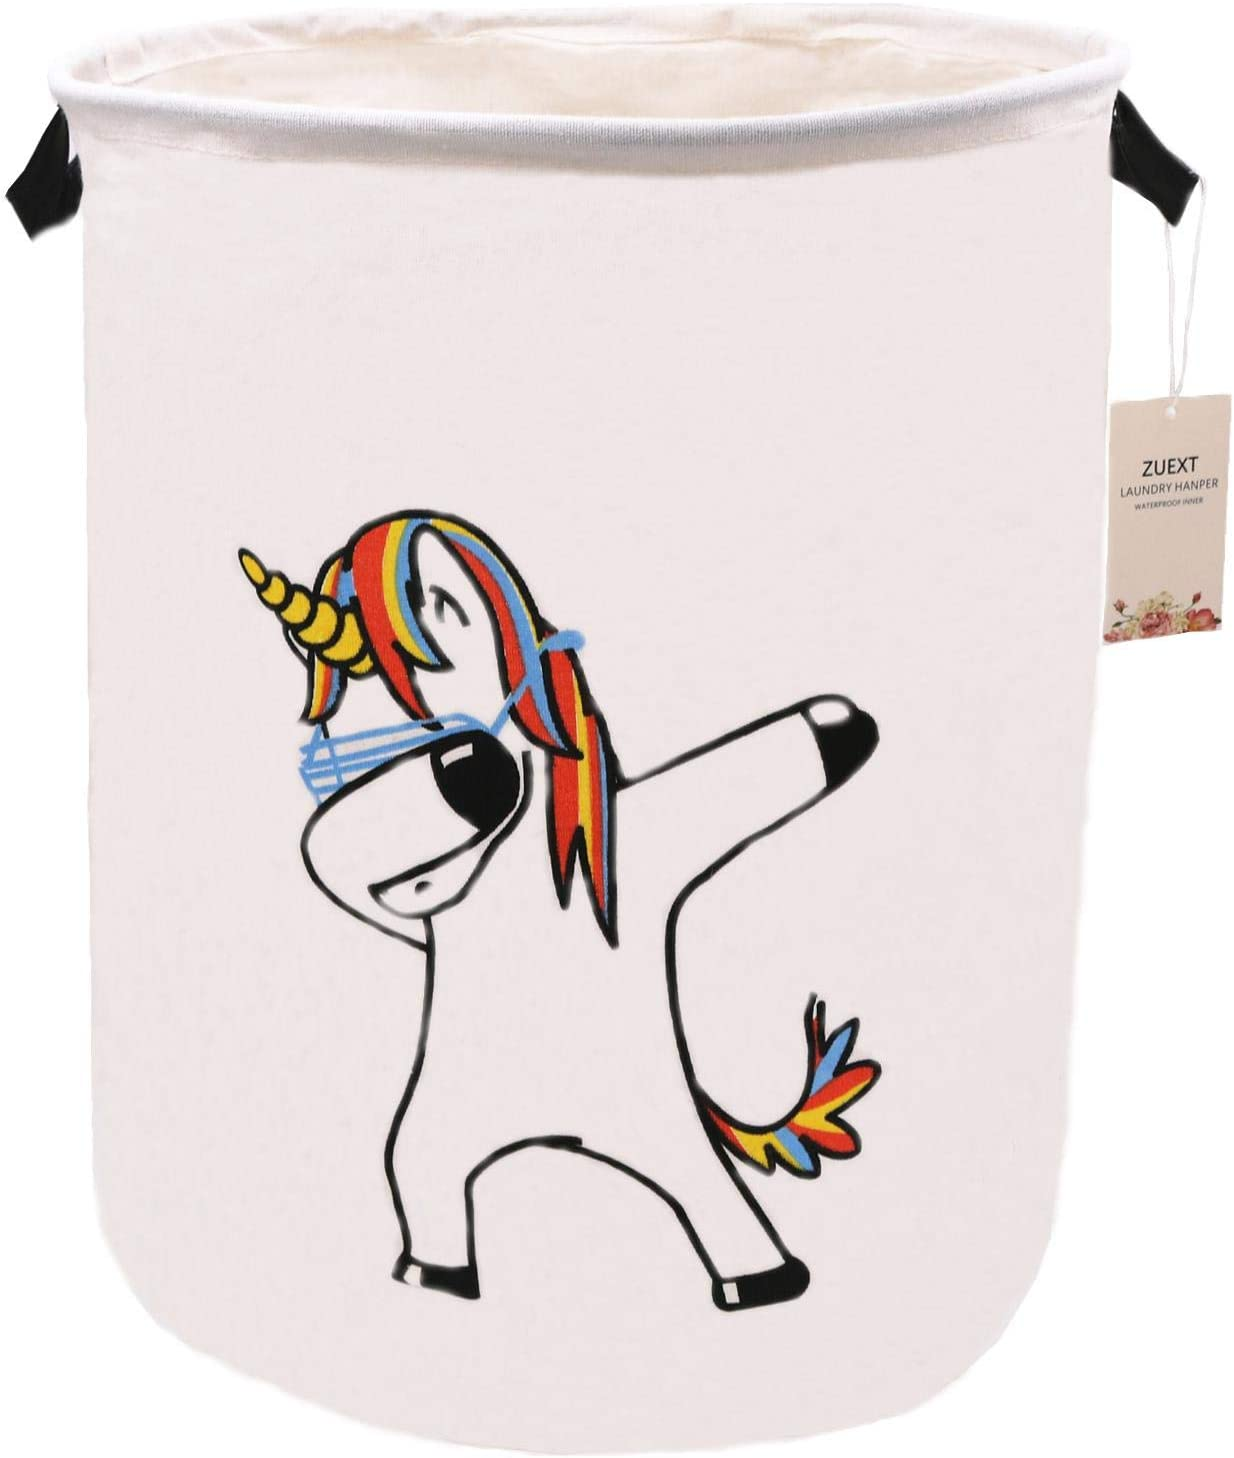 Unicorn Laundry Basket Extra Large 19.7 x 15.7 Inch, ZUEXT Canvas Fabric Collapsible Clothes Bin,Waterproof Laundry Hamper, Nursery Toy Bins,Storage Baskets for Bedroom, Kids, Adults,Boys and Girls